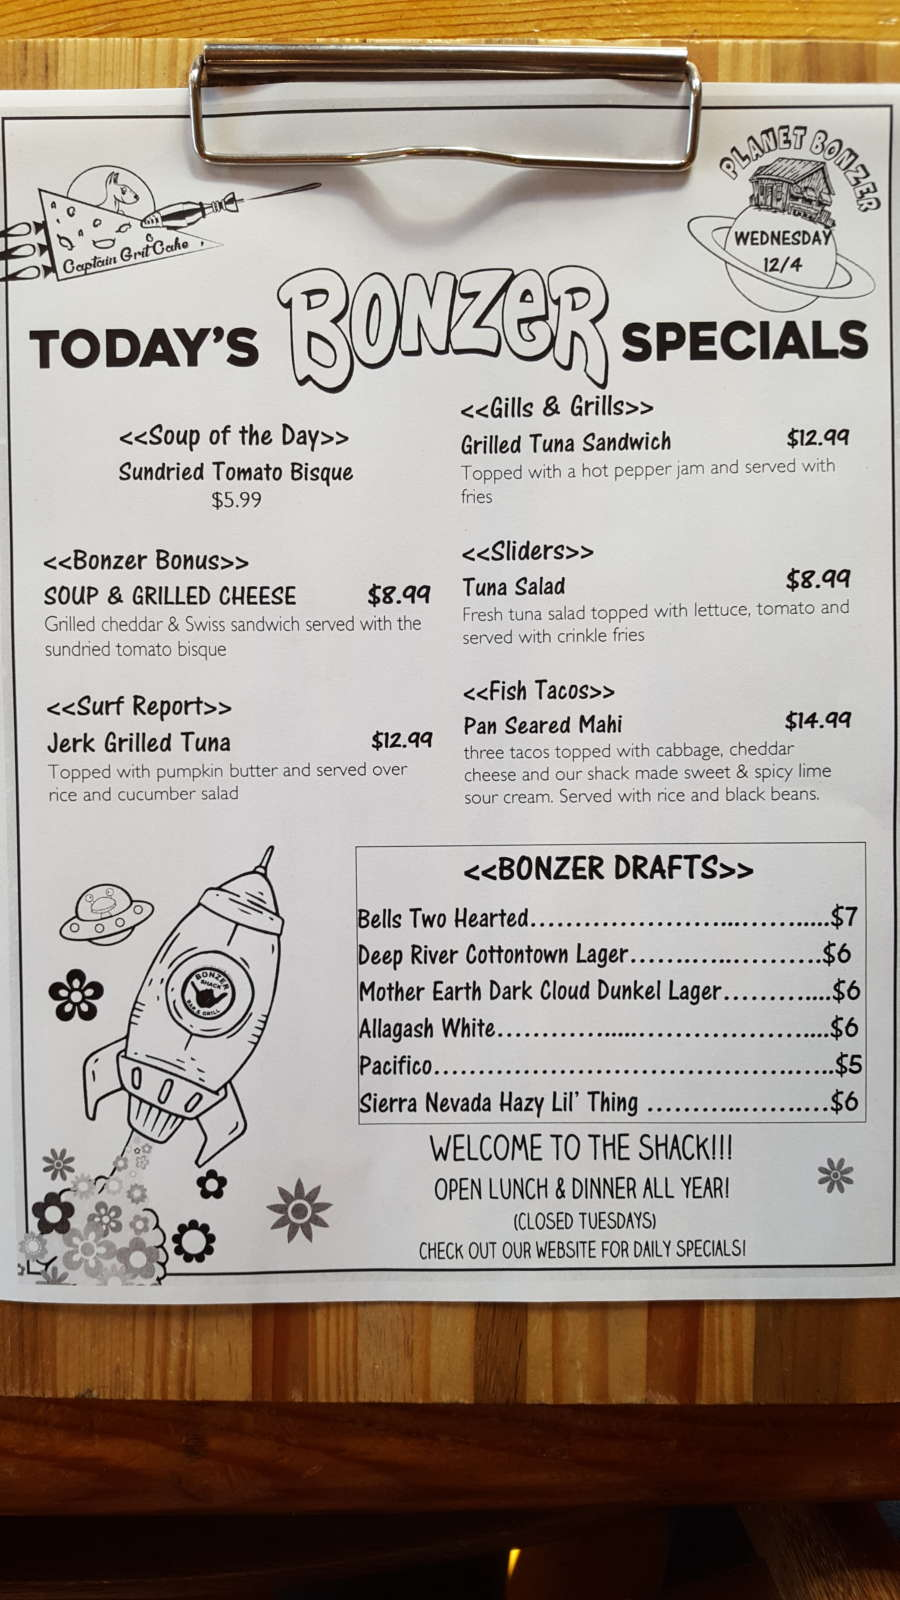 Lunch Specials 12/4